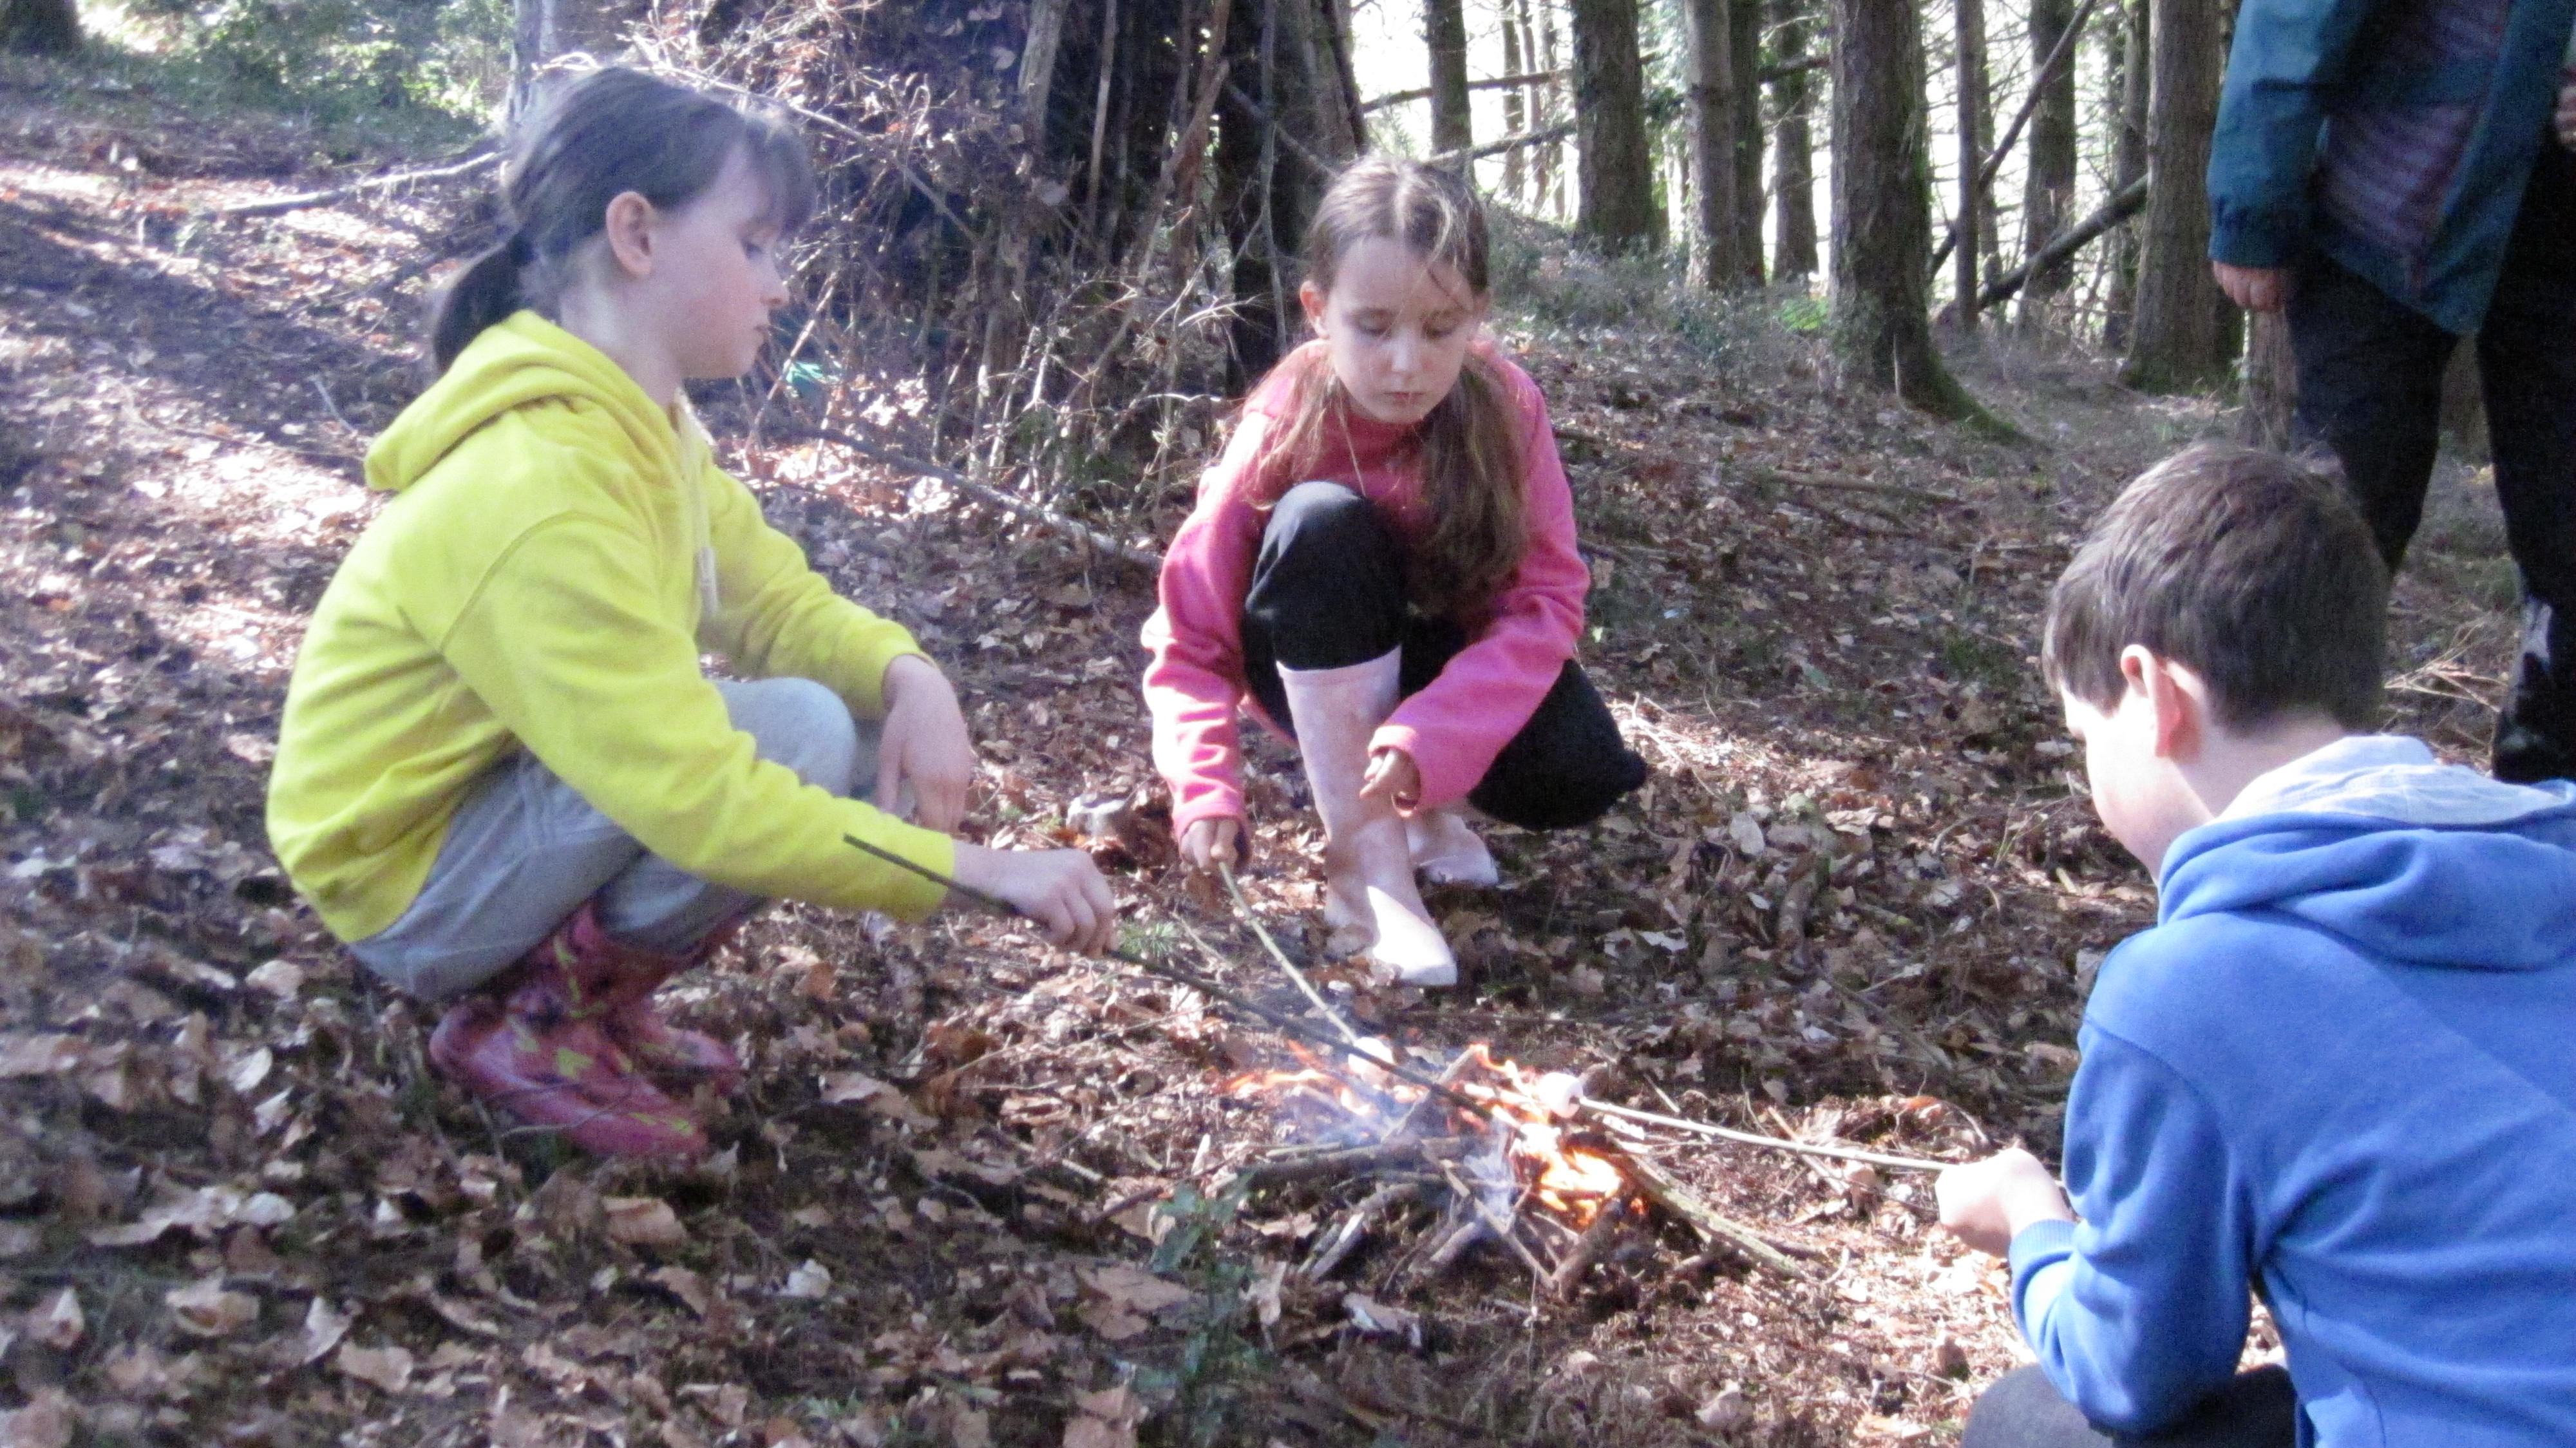 Family Explorer Day at Seaton Marshes (Thu 30 Jul)